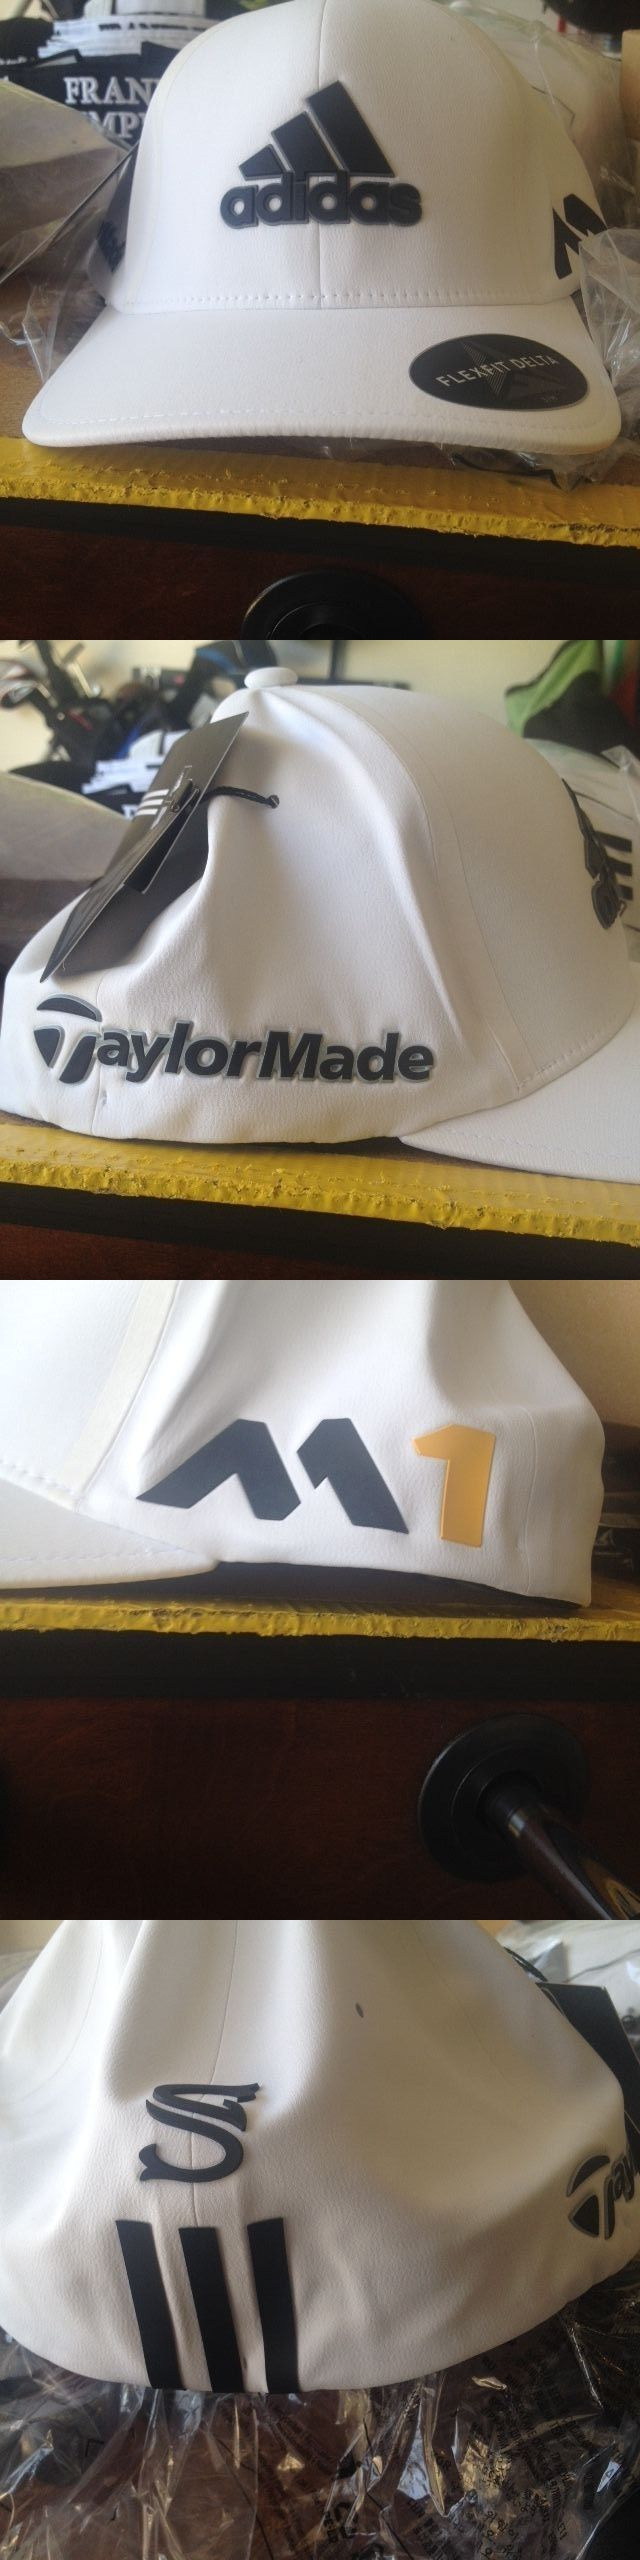 Golf Visors and Hats 158937: Adidas Taylormade Tour Issue Hat S M Sergio Garcia -> BUY IT NOW ONLY: $35 on eBay!